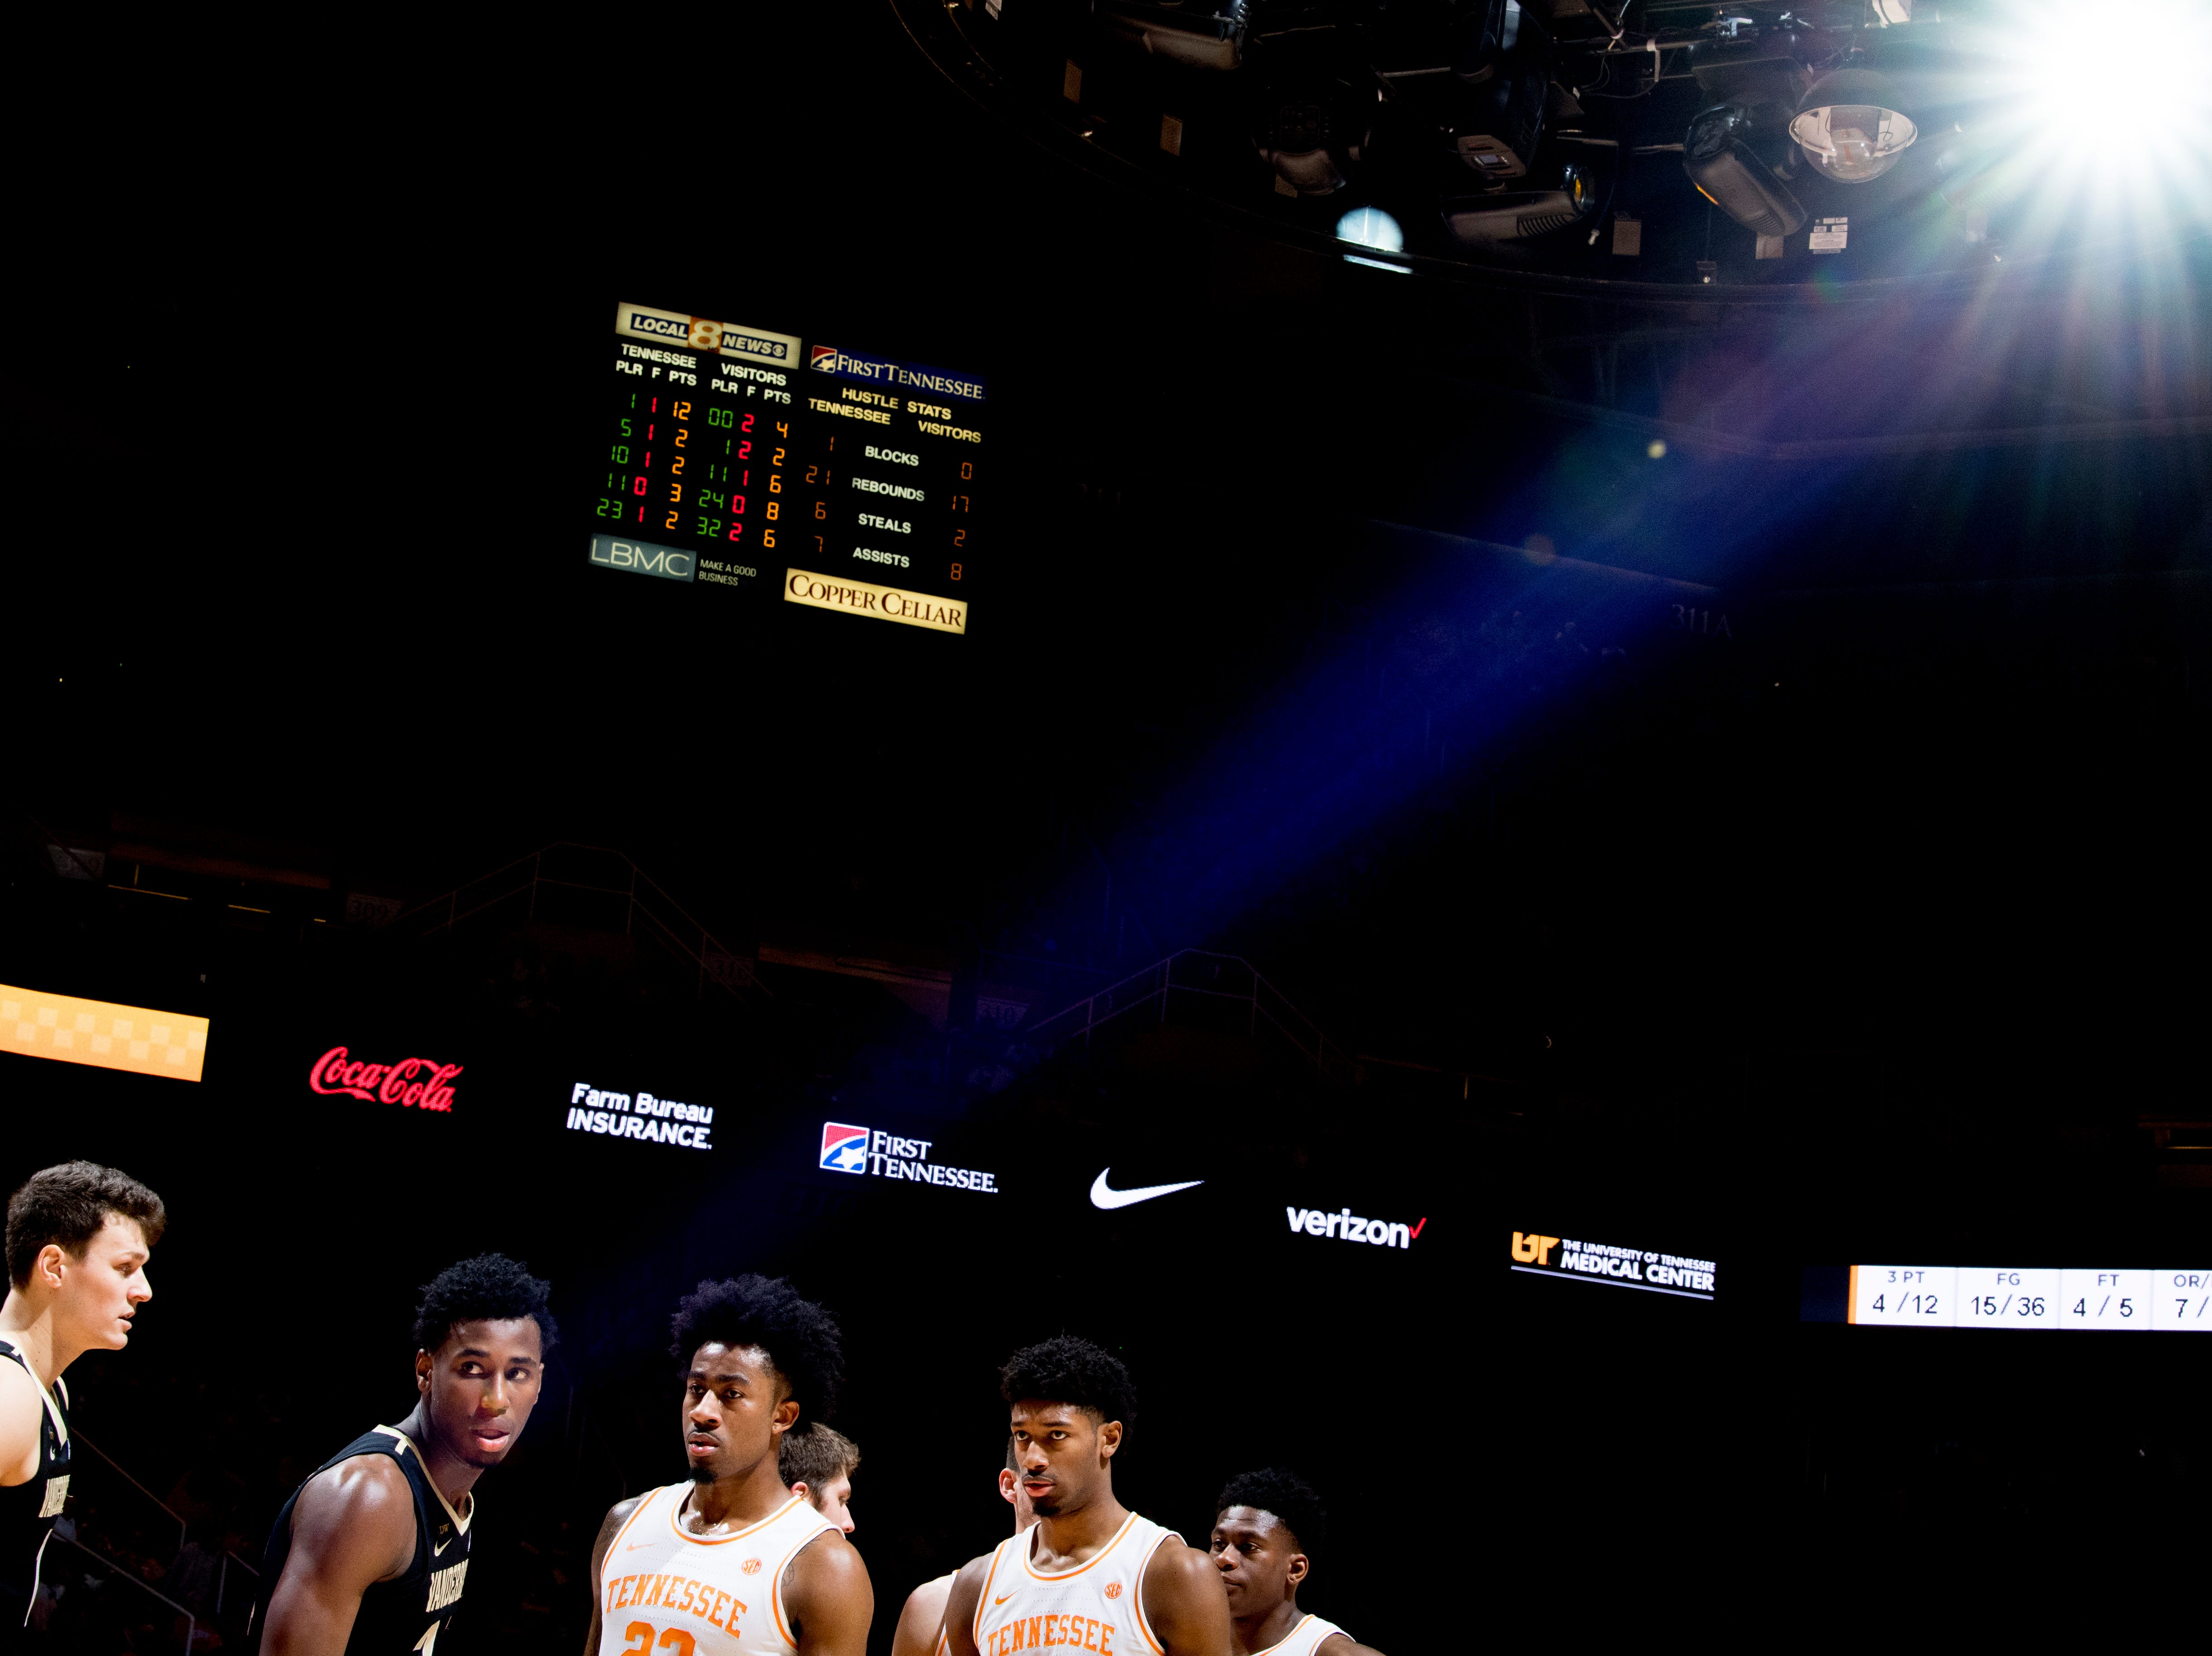 Action during a game between Tennessee and Vanderbilt at Thompson-Boling Arena in Knoxville, Tennessee on Tuesday, February 19, 2019.